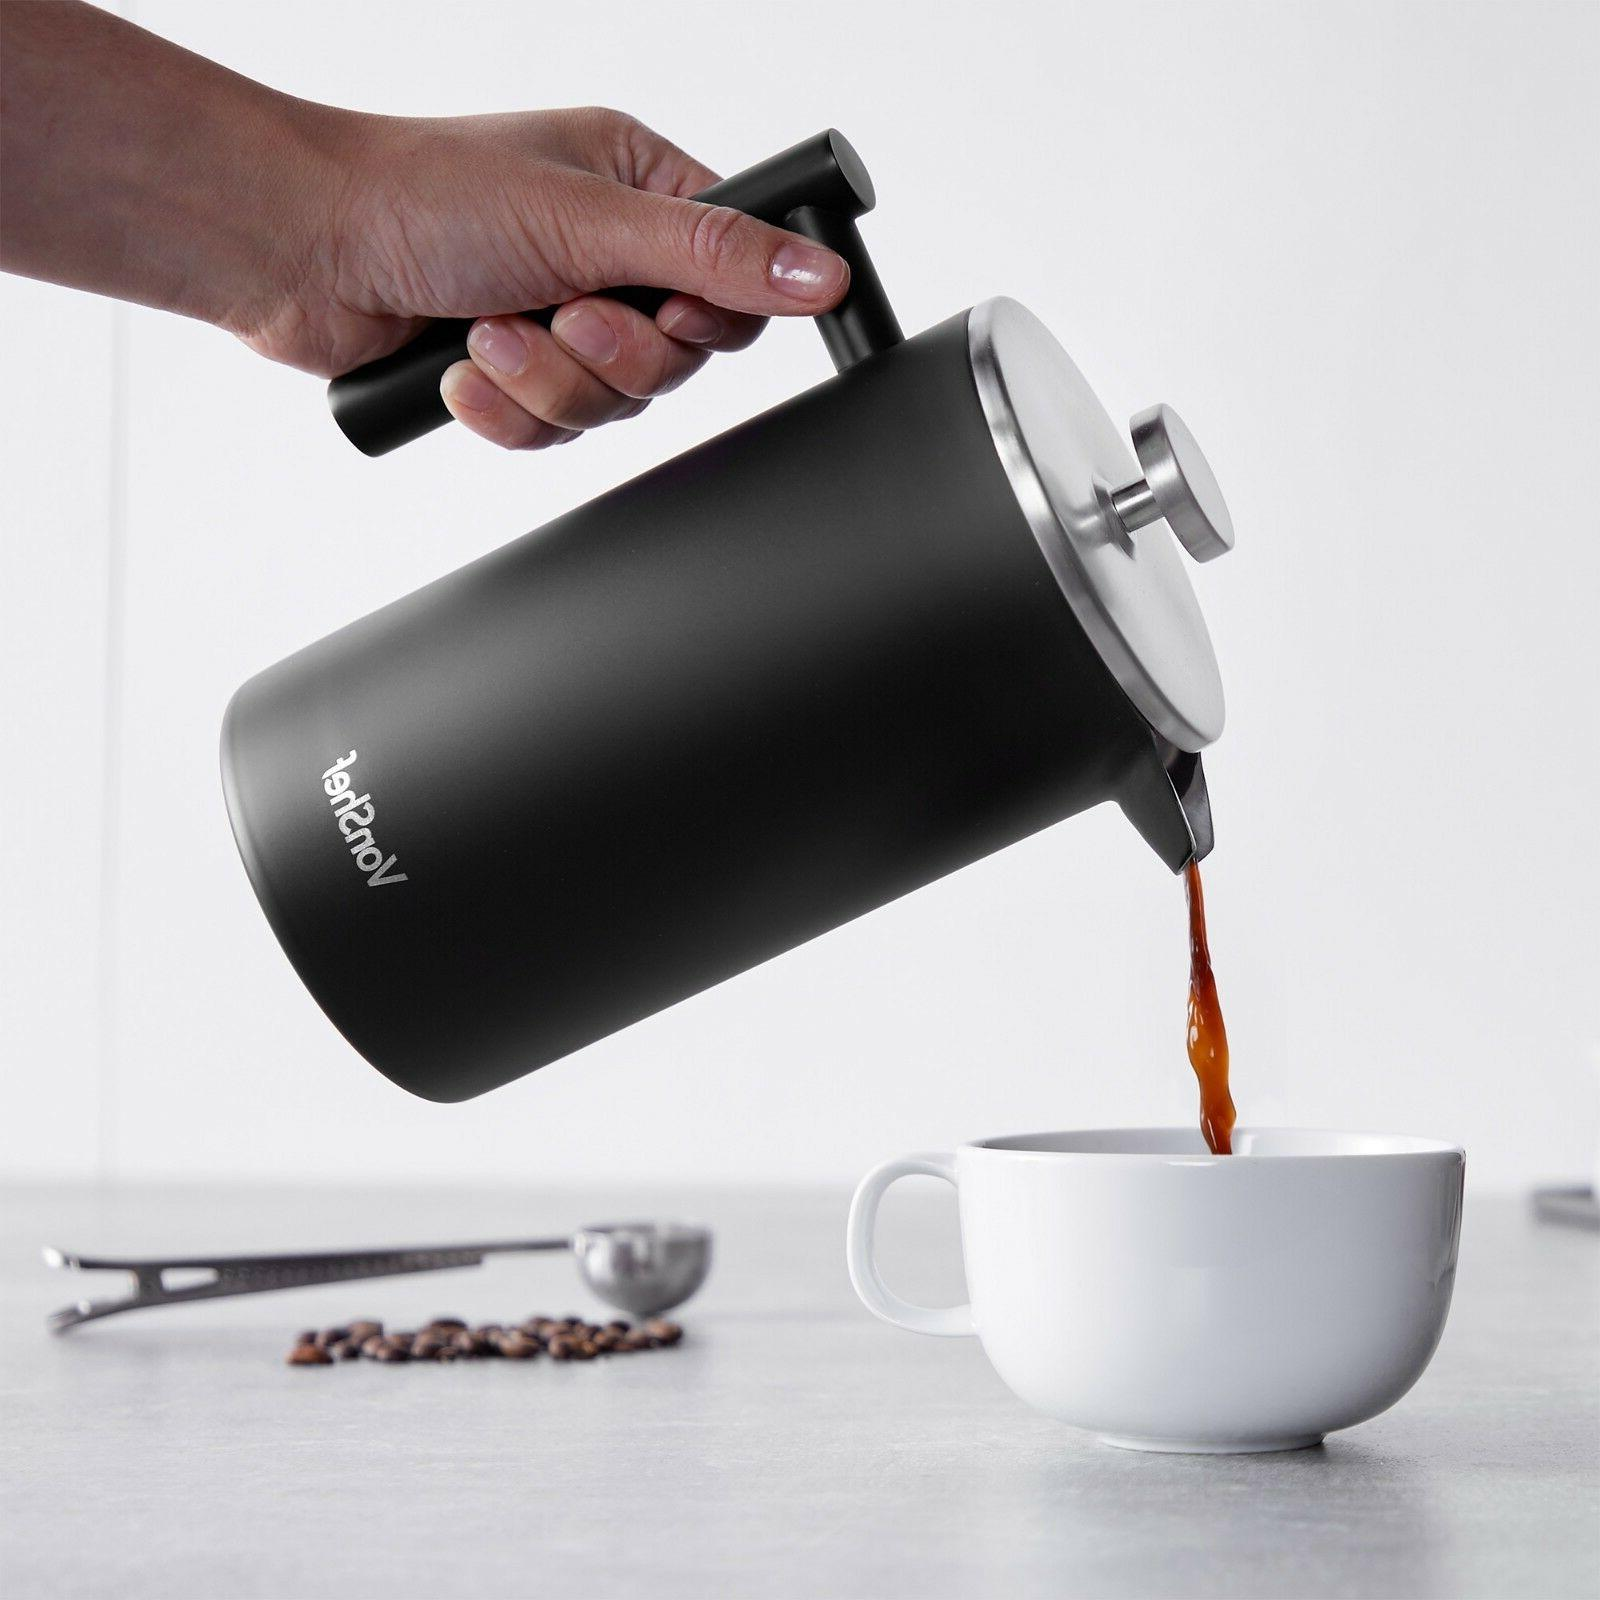 Stainless Steel Press Cafetiere & Spoon